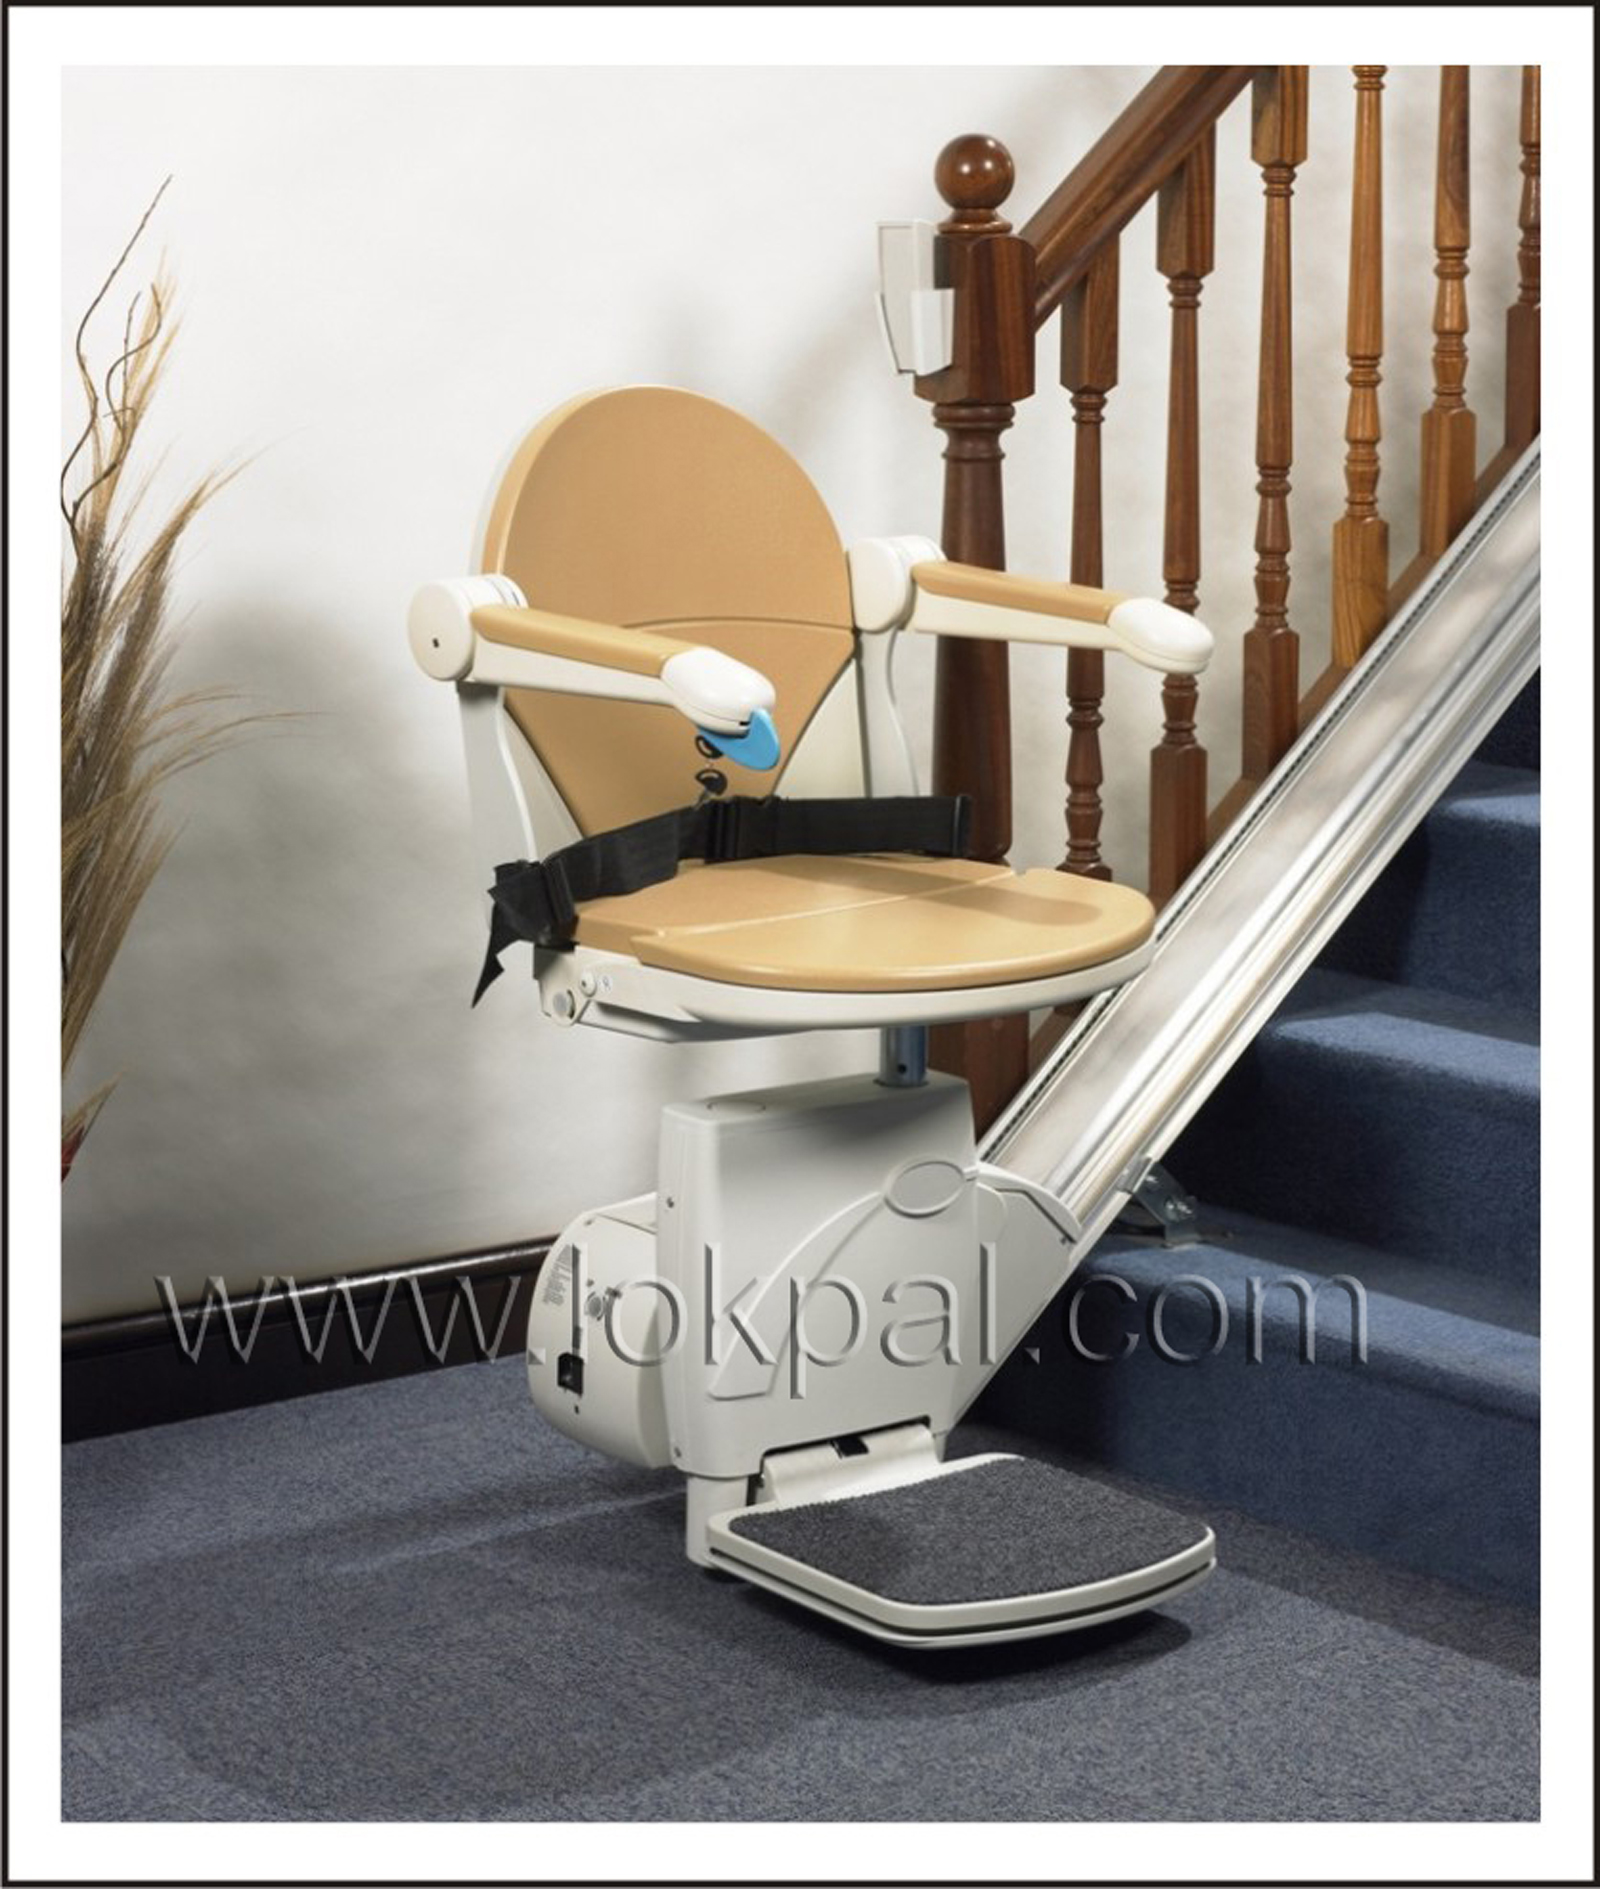 u003eStair Lift Chair Stairlft Chair Manufacturers Suppliers and Dealers & Stair Lift Chair Stairlft Chair Manufacturers Suppliers and Dealers